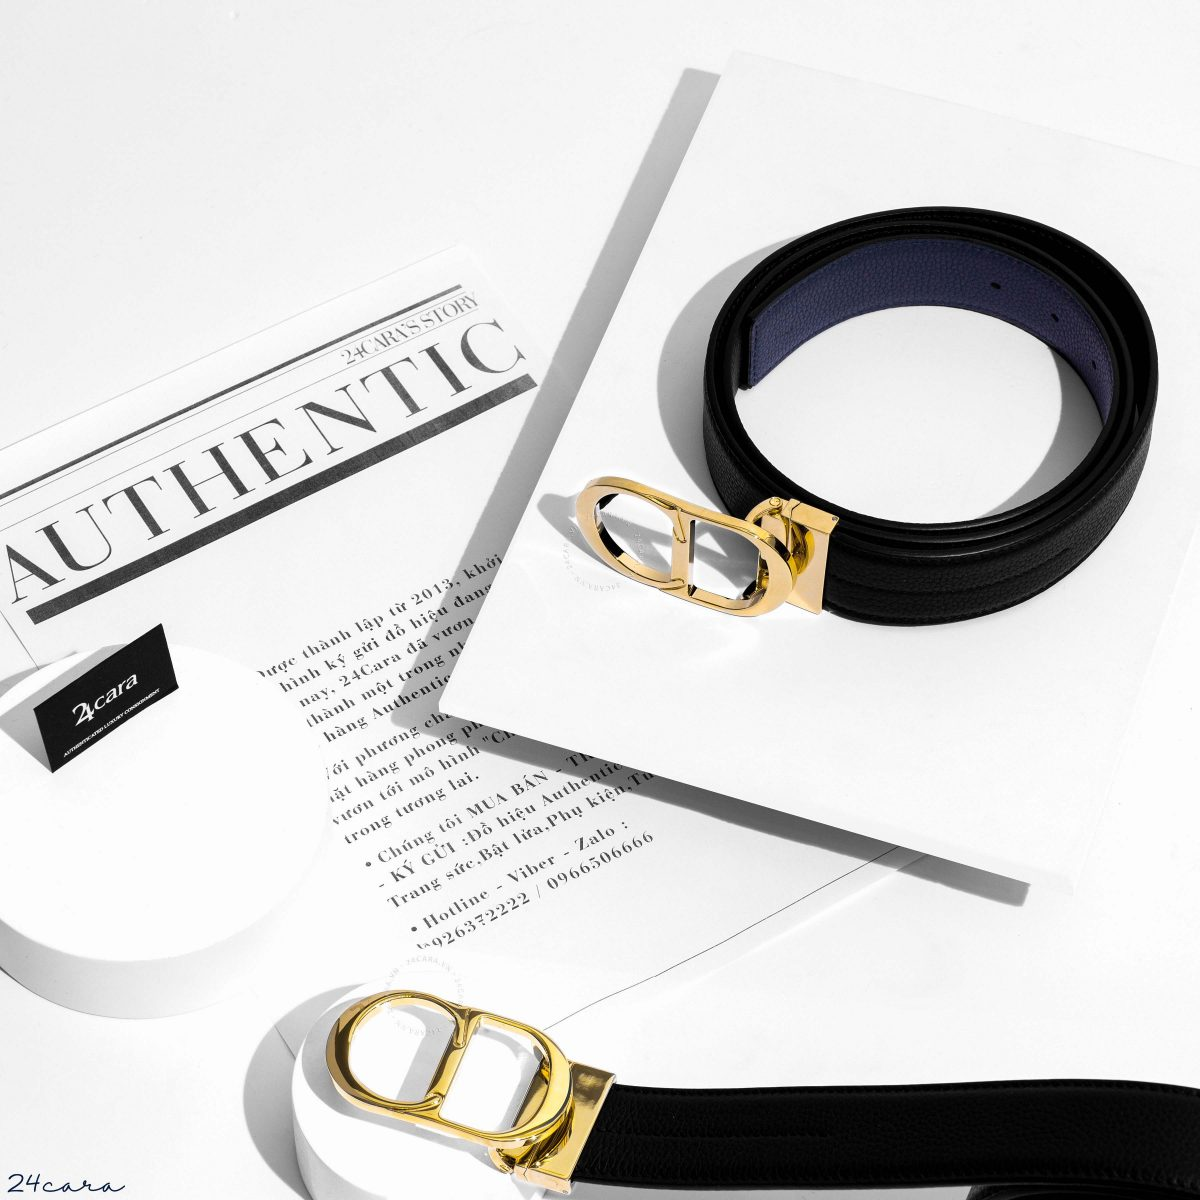 CHRISTIAN DIOR IN BLACK AND NAVY BLUE GRAINED CALFSKIN 35 MM BELT